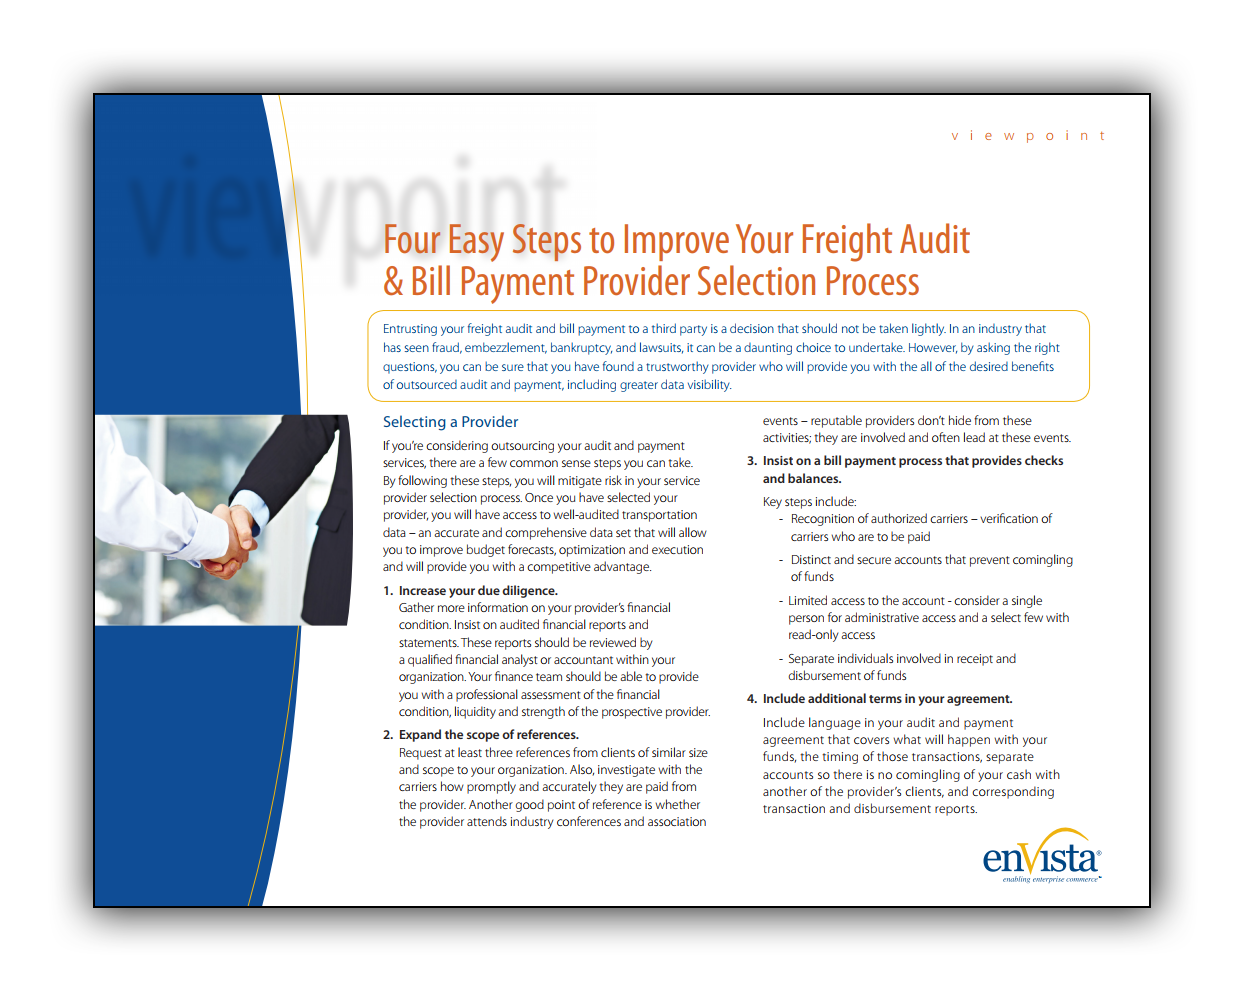 Image_four-easy-steps-to-improve-your-freight-audit-and-bill-payment-provider-selection-process.png